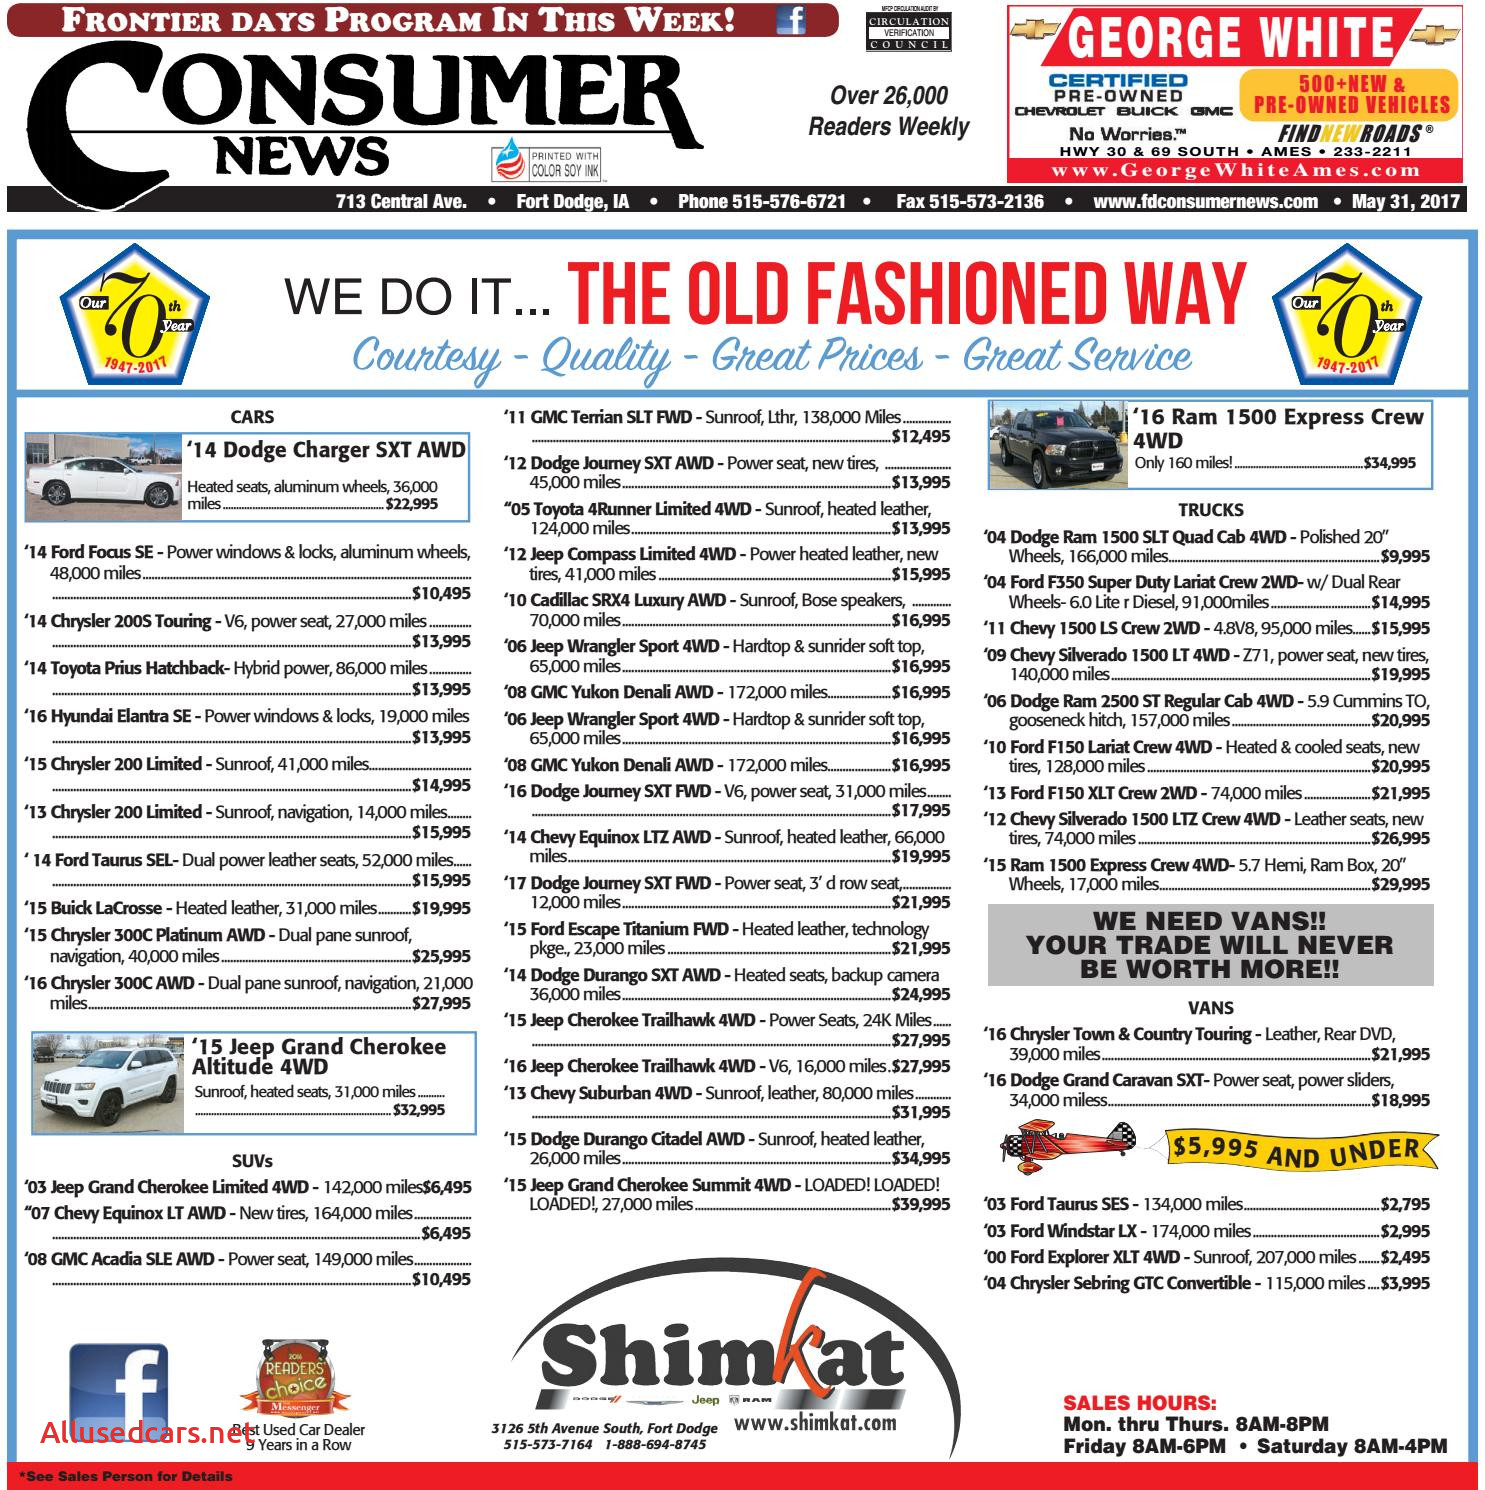 View Carfax for Free Best Of 05 31 17 Consumer News by Consumer News issuu